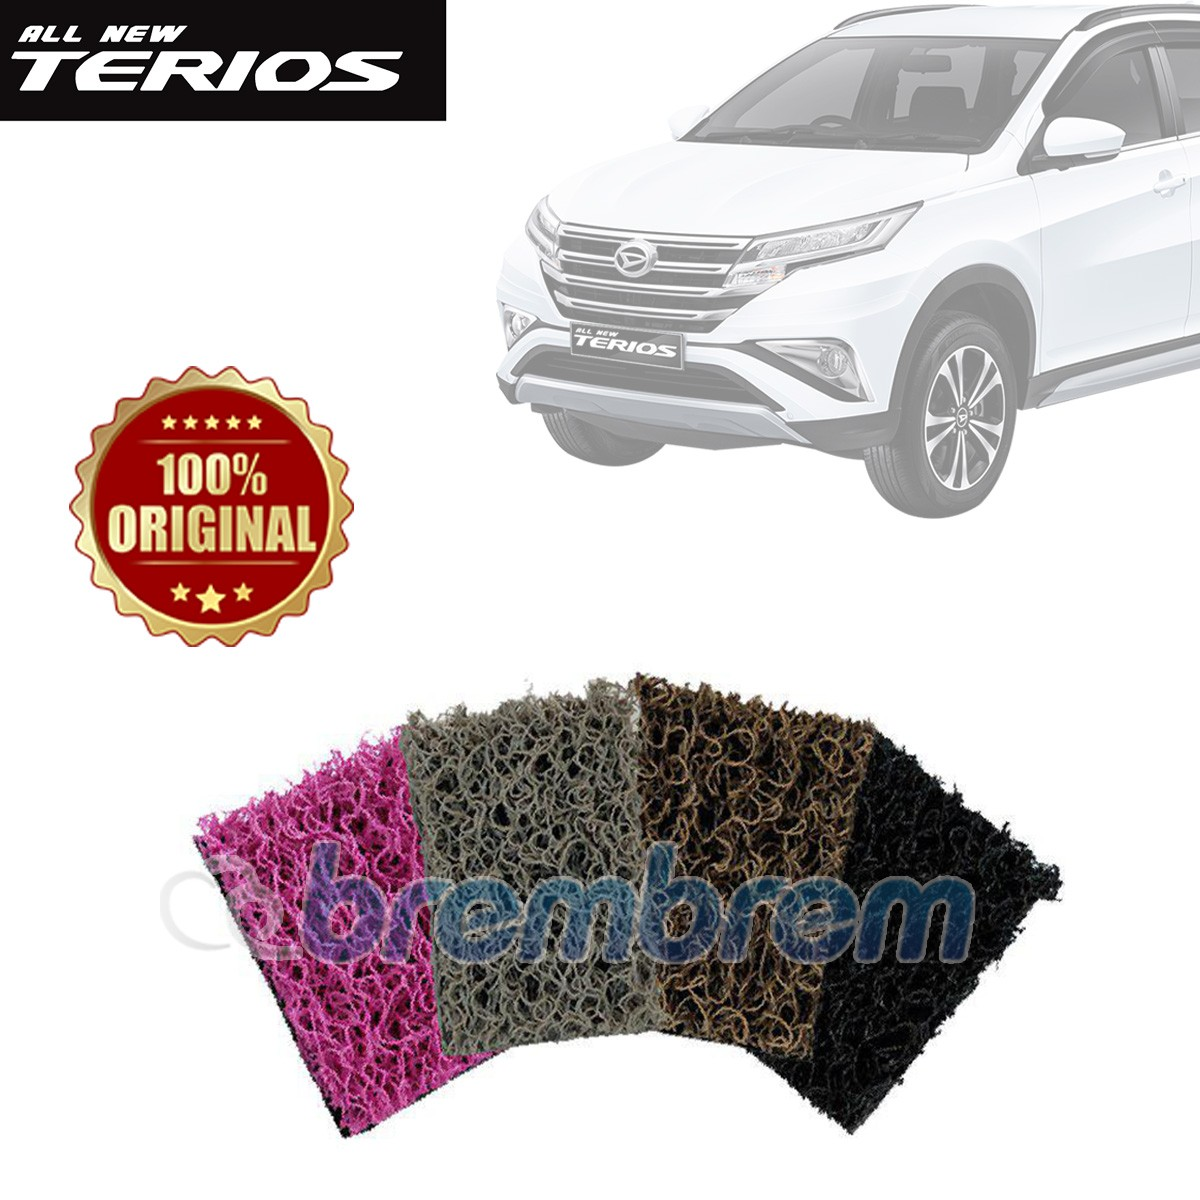 KARPET COMFORT DELUXE + BAGASI DAIHATSU ALL NEW TERIOS 2018